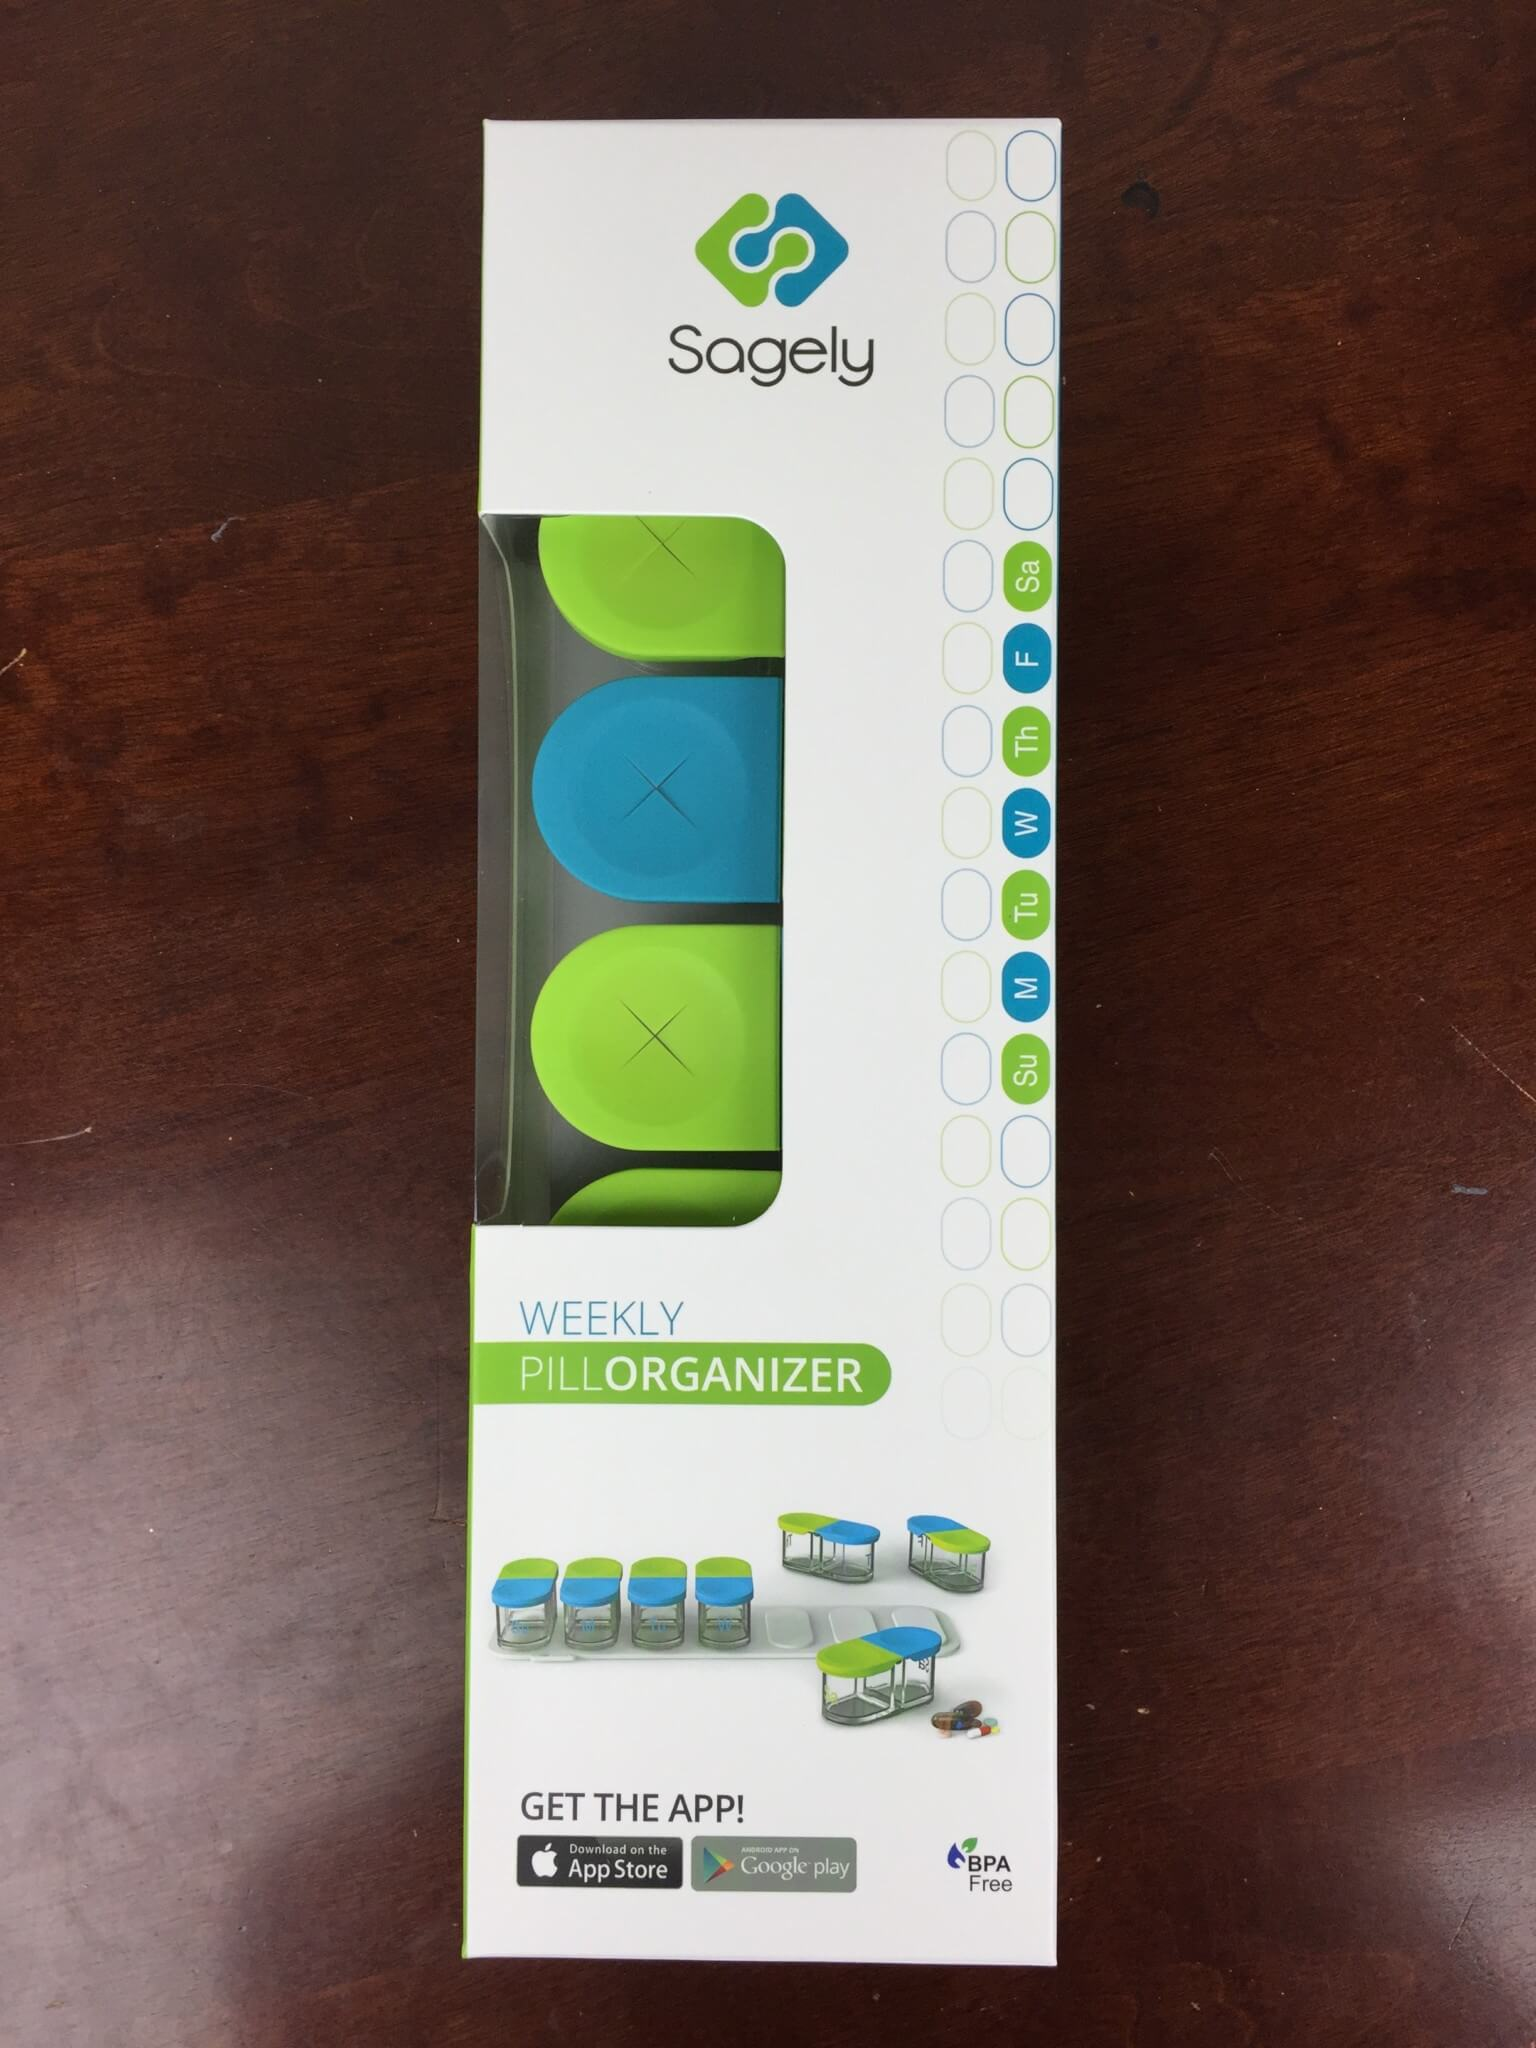 Sagely pill organizer review the grail of vitamin prescription sagely pill organizer review the grail of vitamin prescription organizers solutioingenieria Gallery